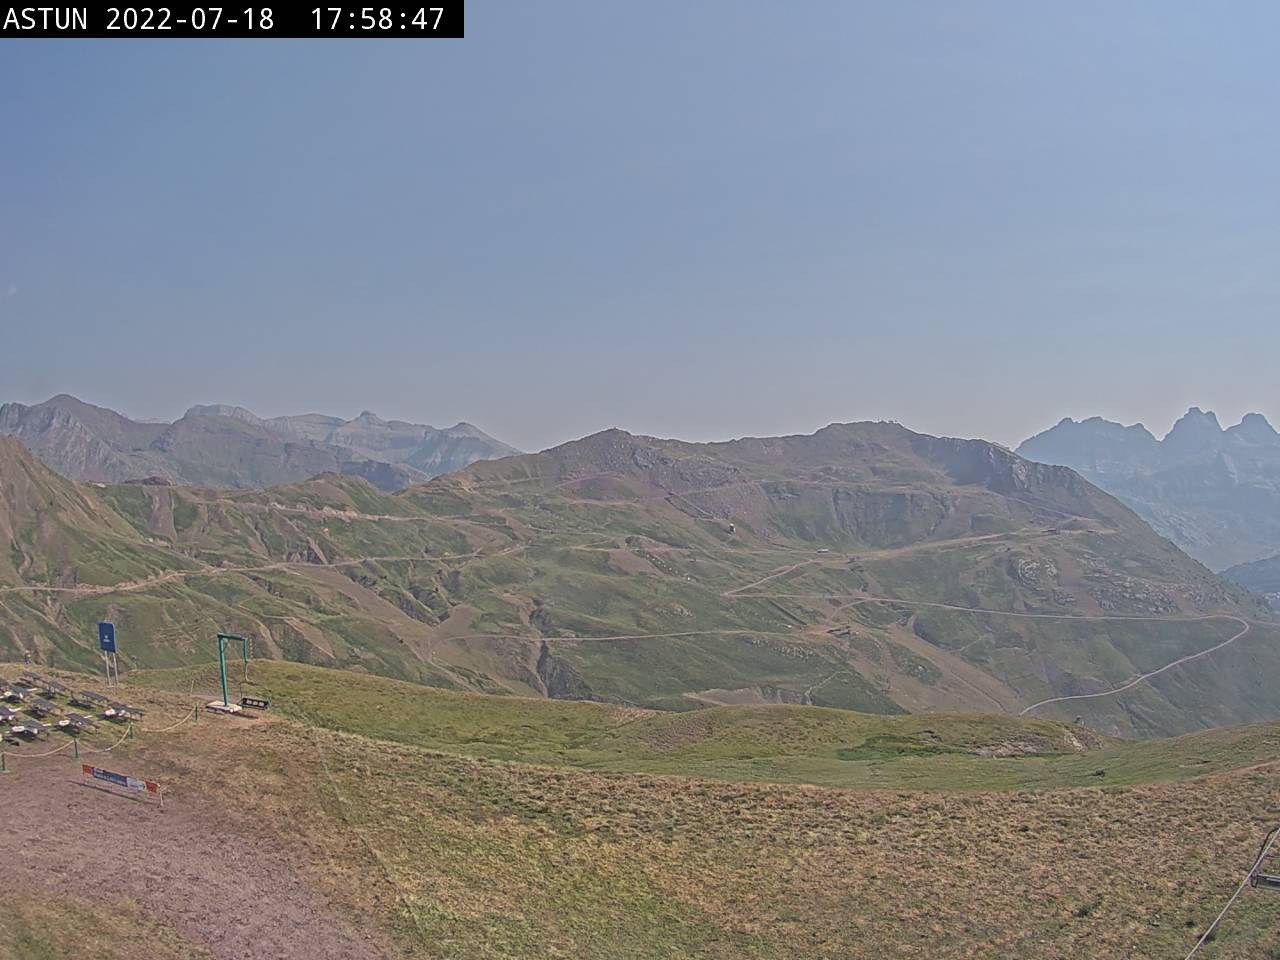 Webcam de Astún